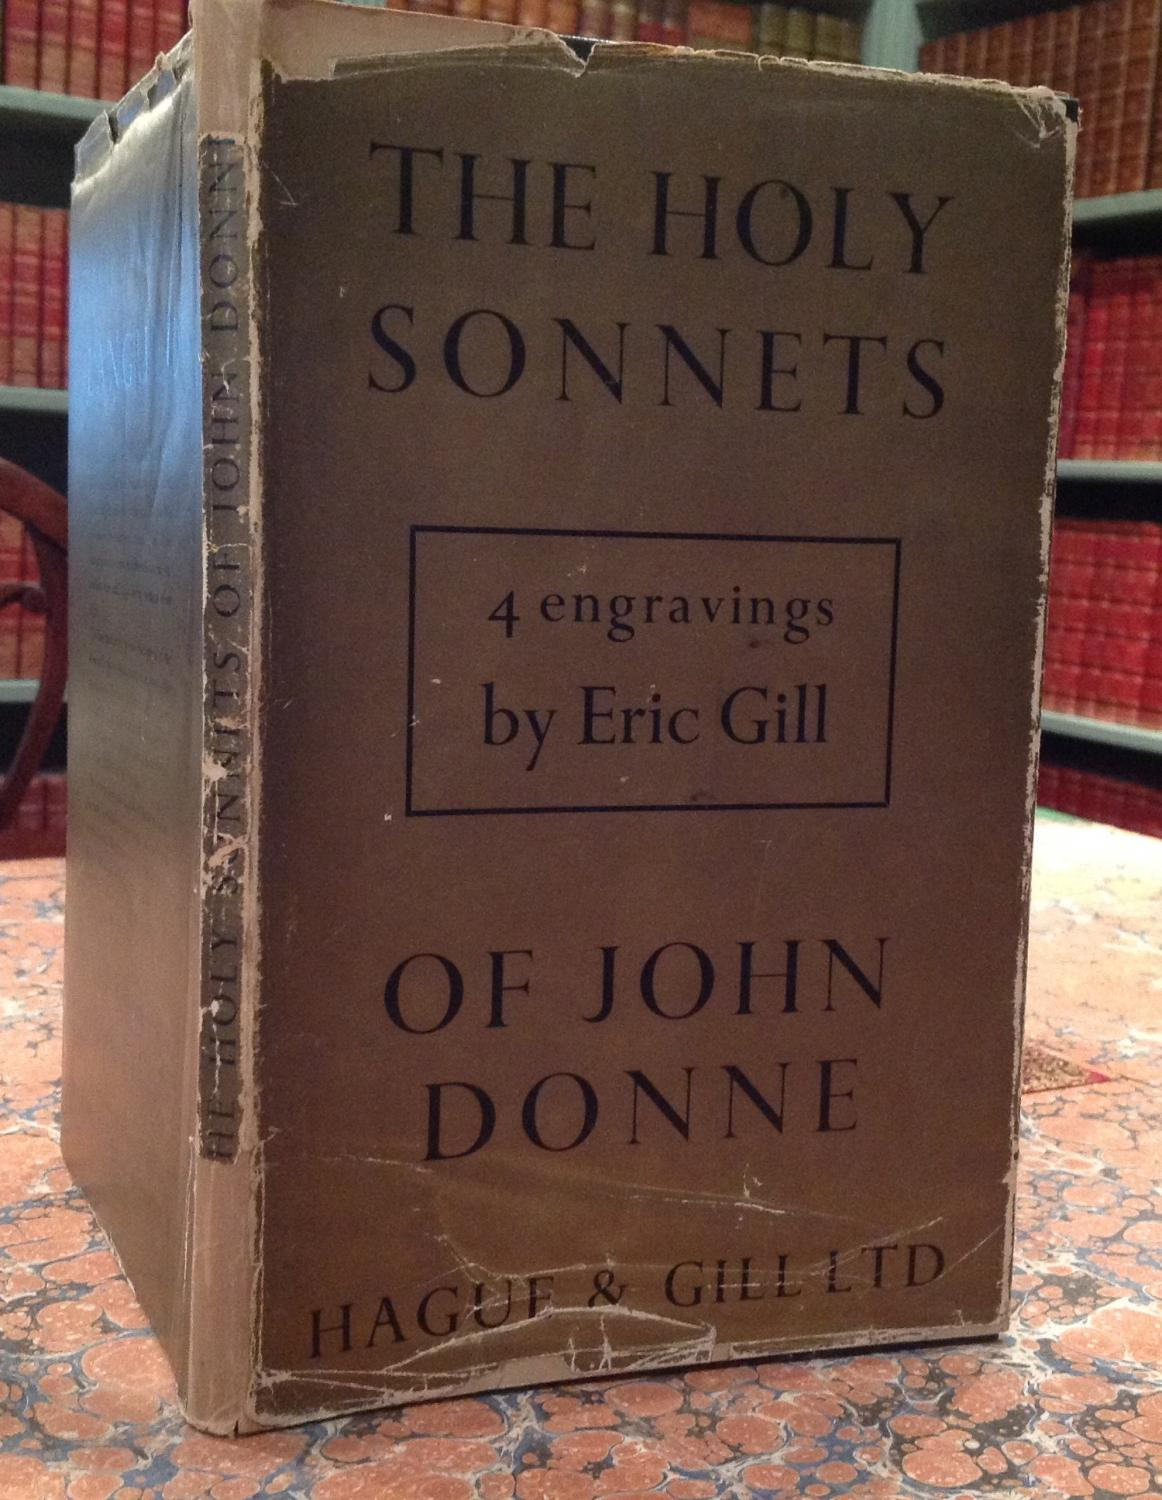 The Holy Sonnets, with engravings by Eric Gill: Donne (John), introduction by Hugh l'A. Fausset: